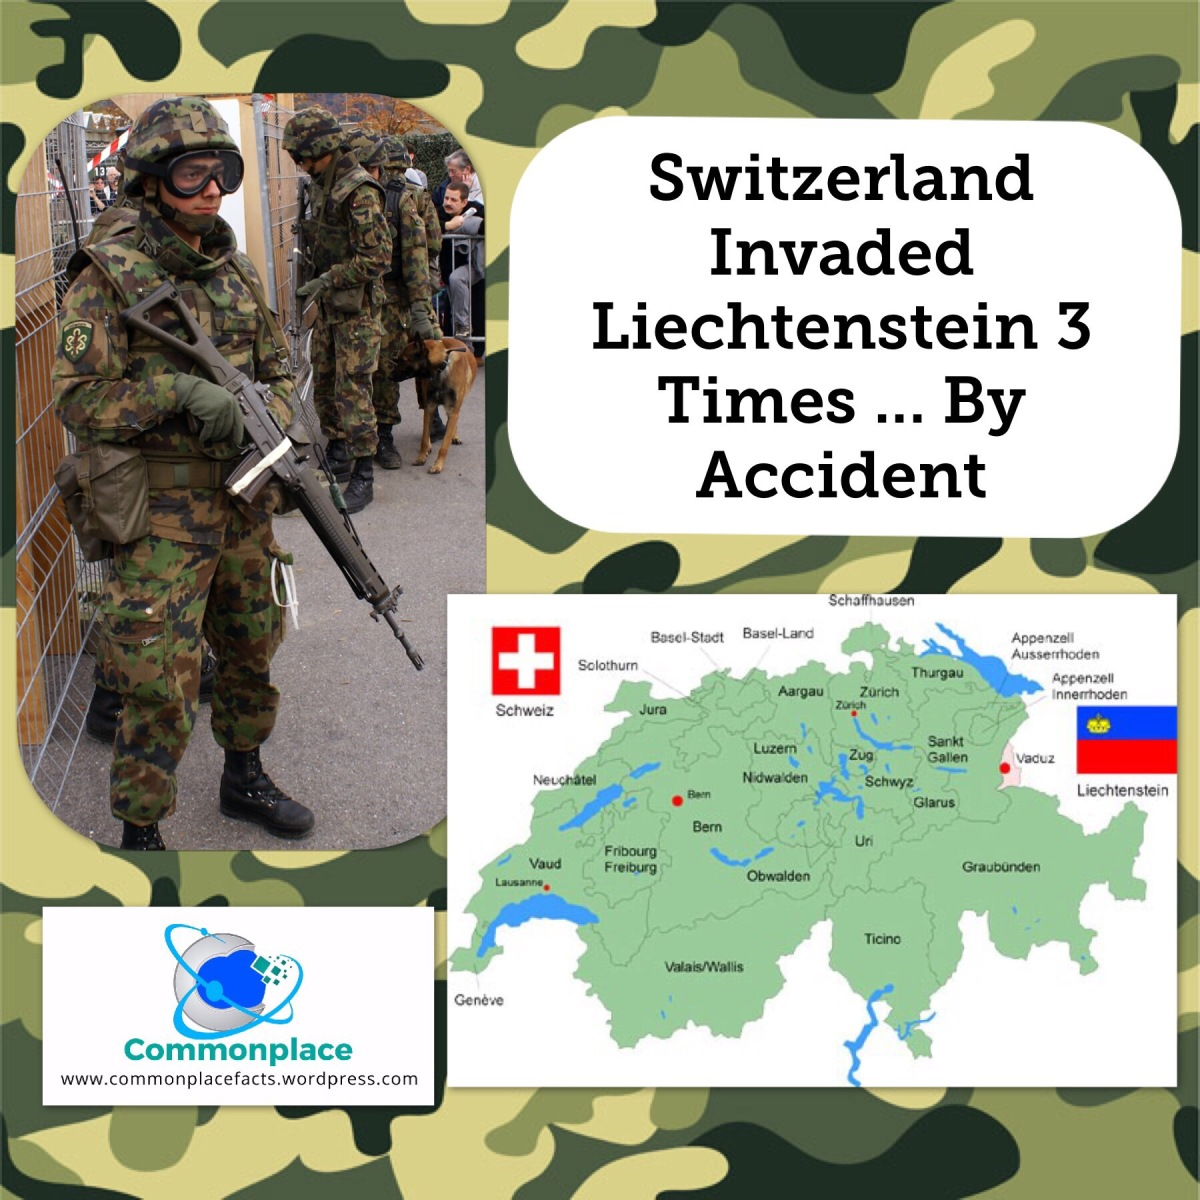 The Accidental Invasions of Liechtenstein